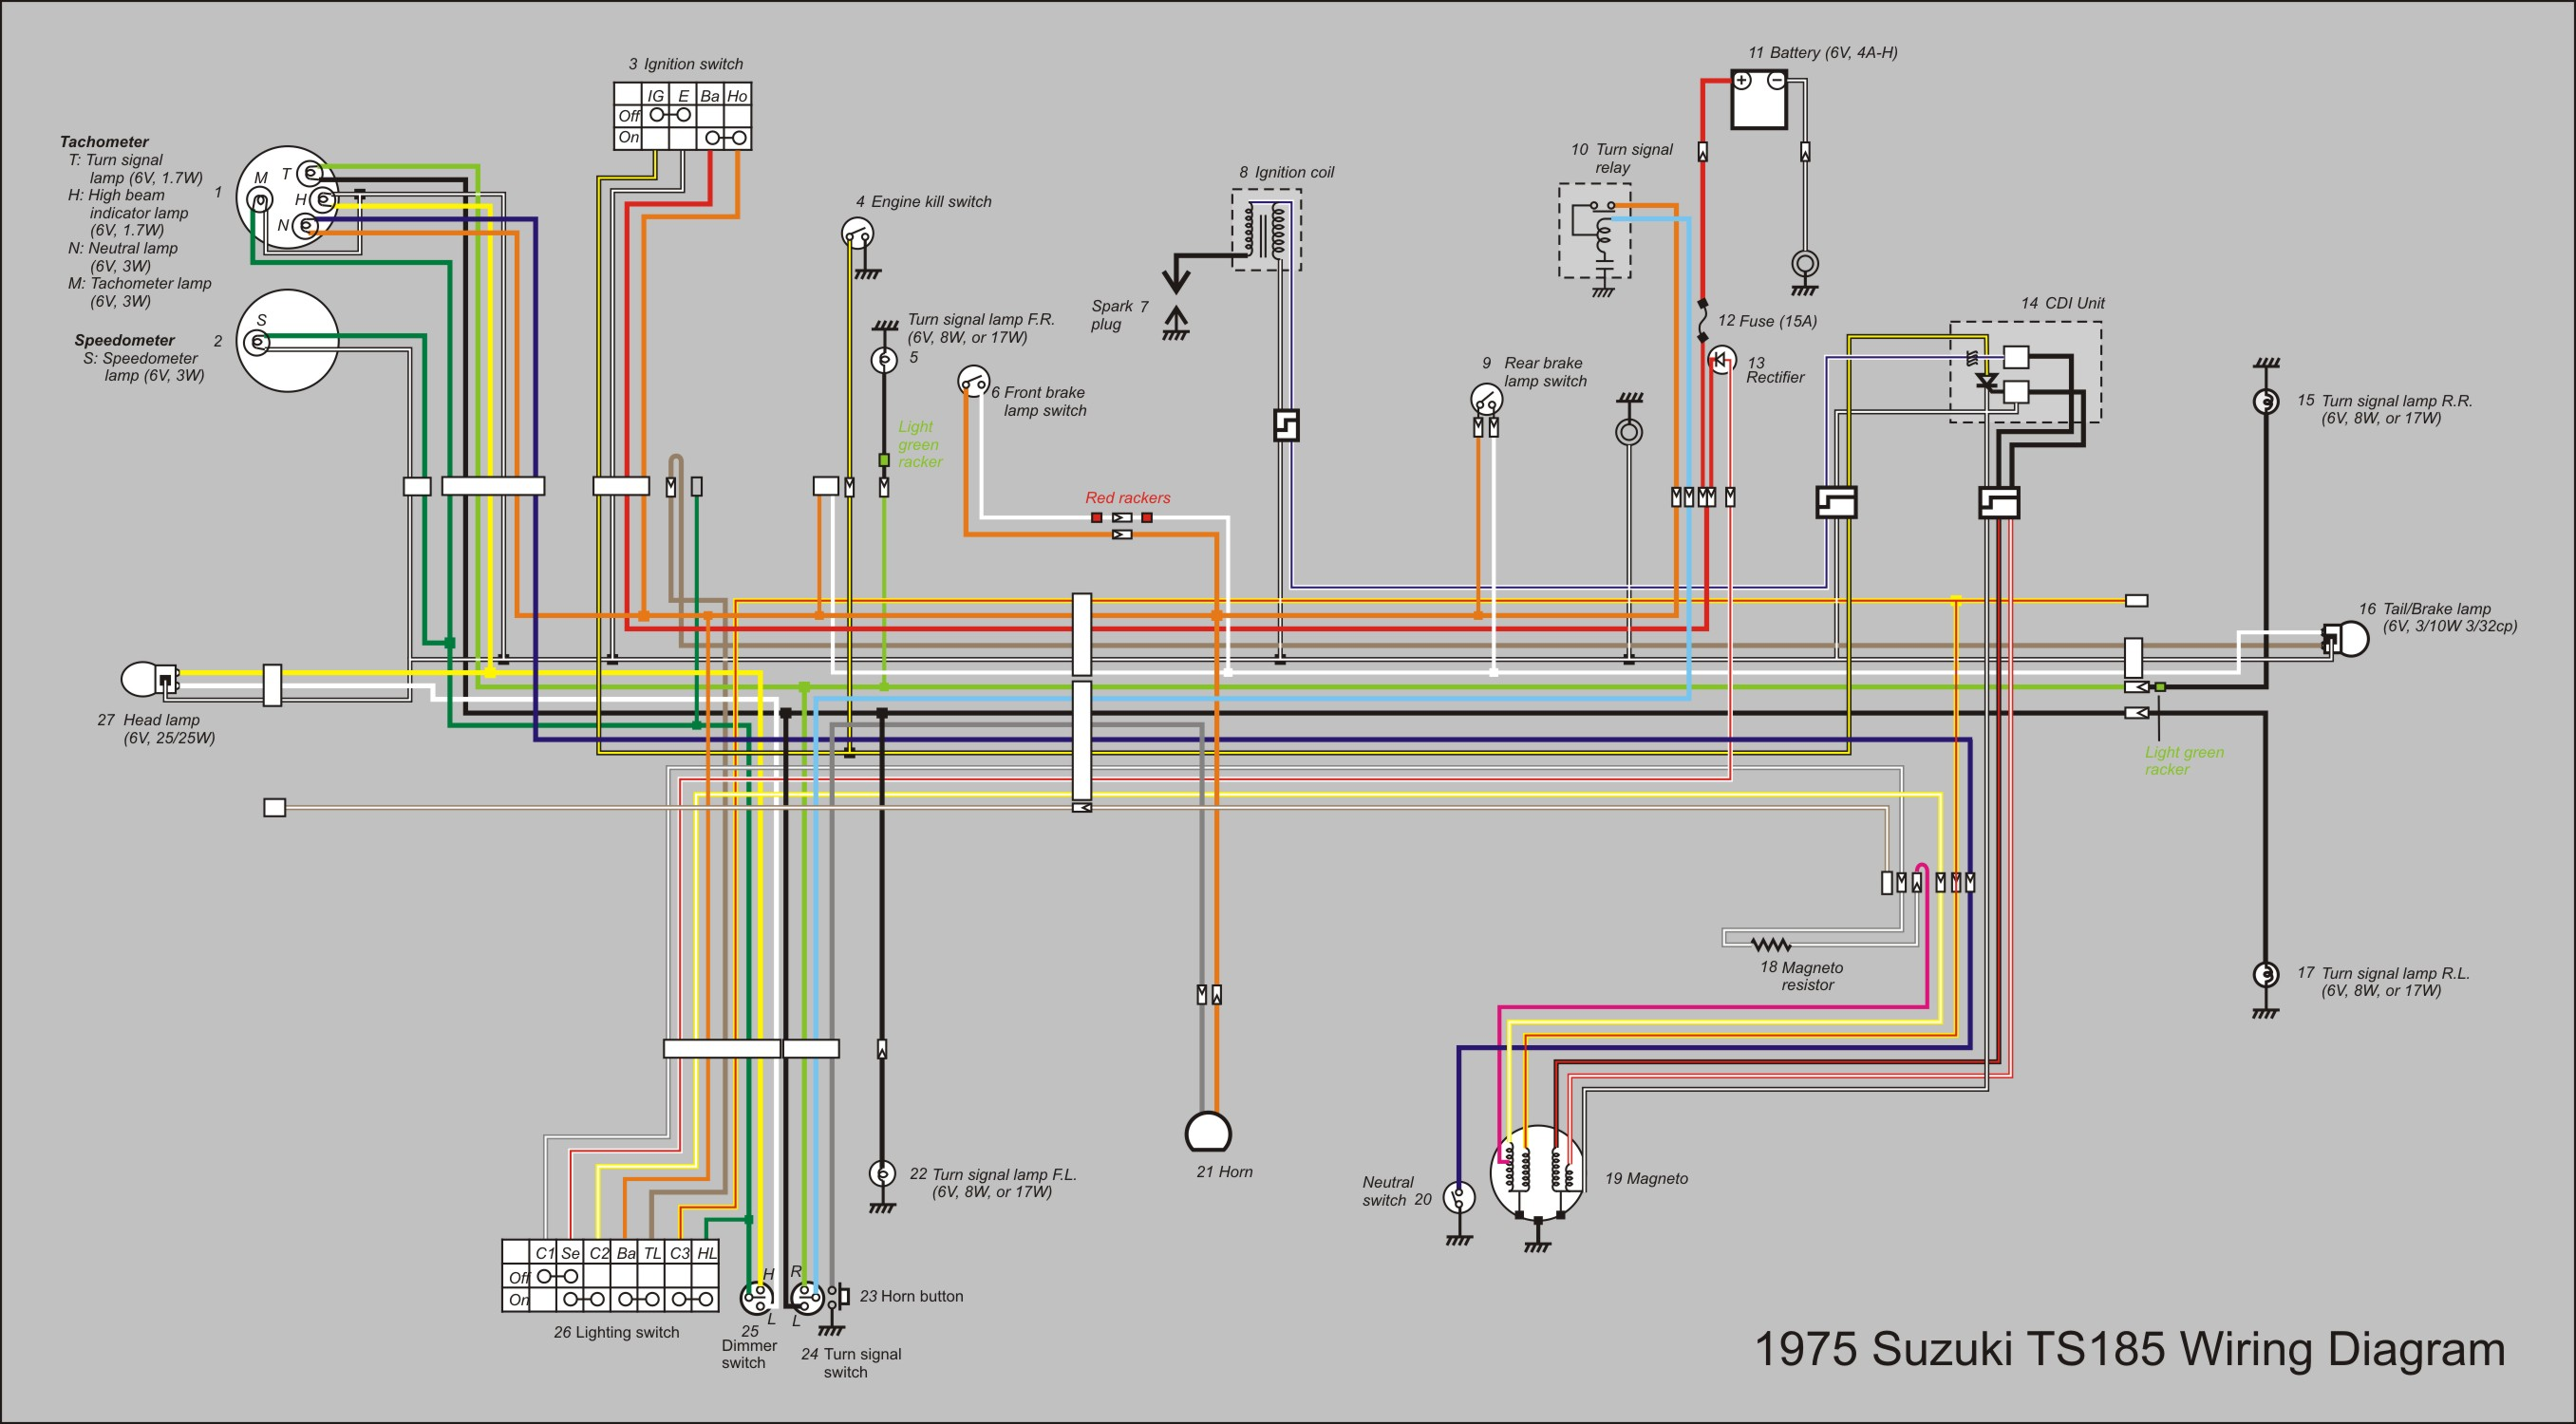 TS185_Wiring_Diagram_new file ts185 wiring diagram new jpg wikimedia commons suzuki wiring diagram at reclaimingppi.co